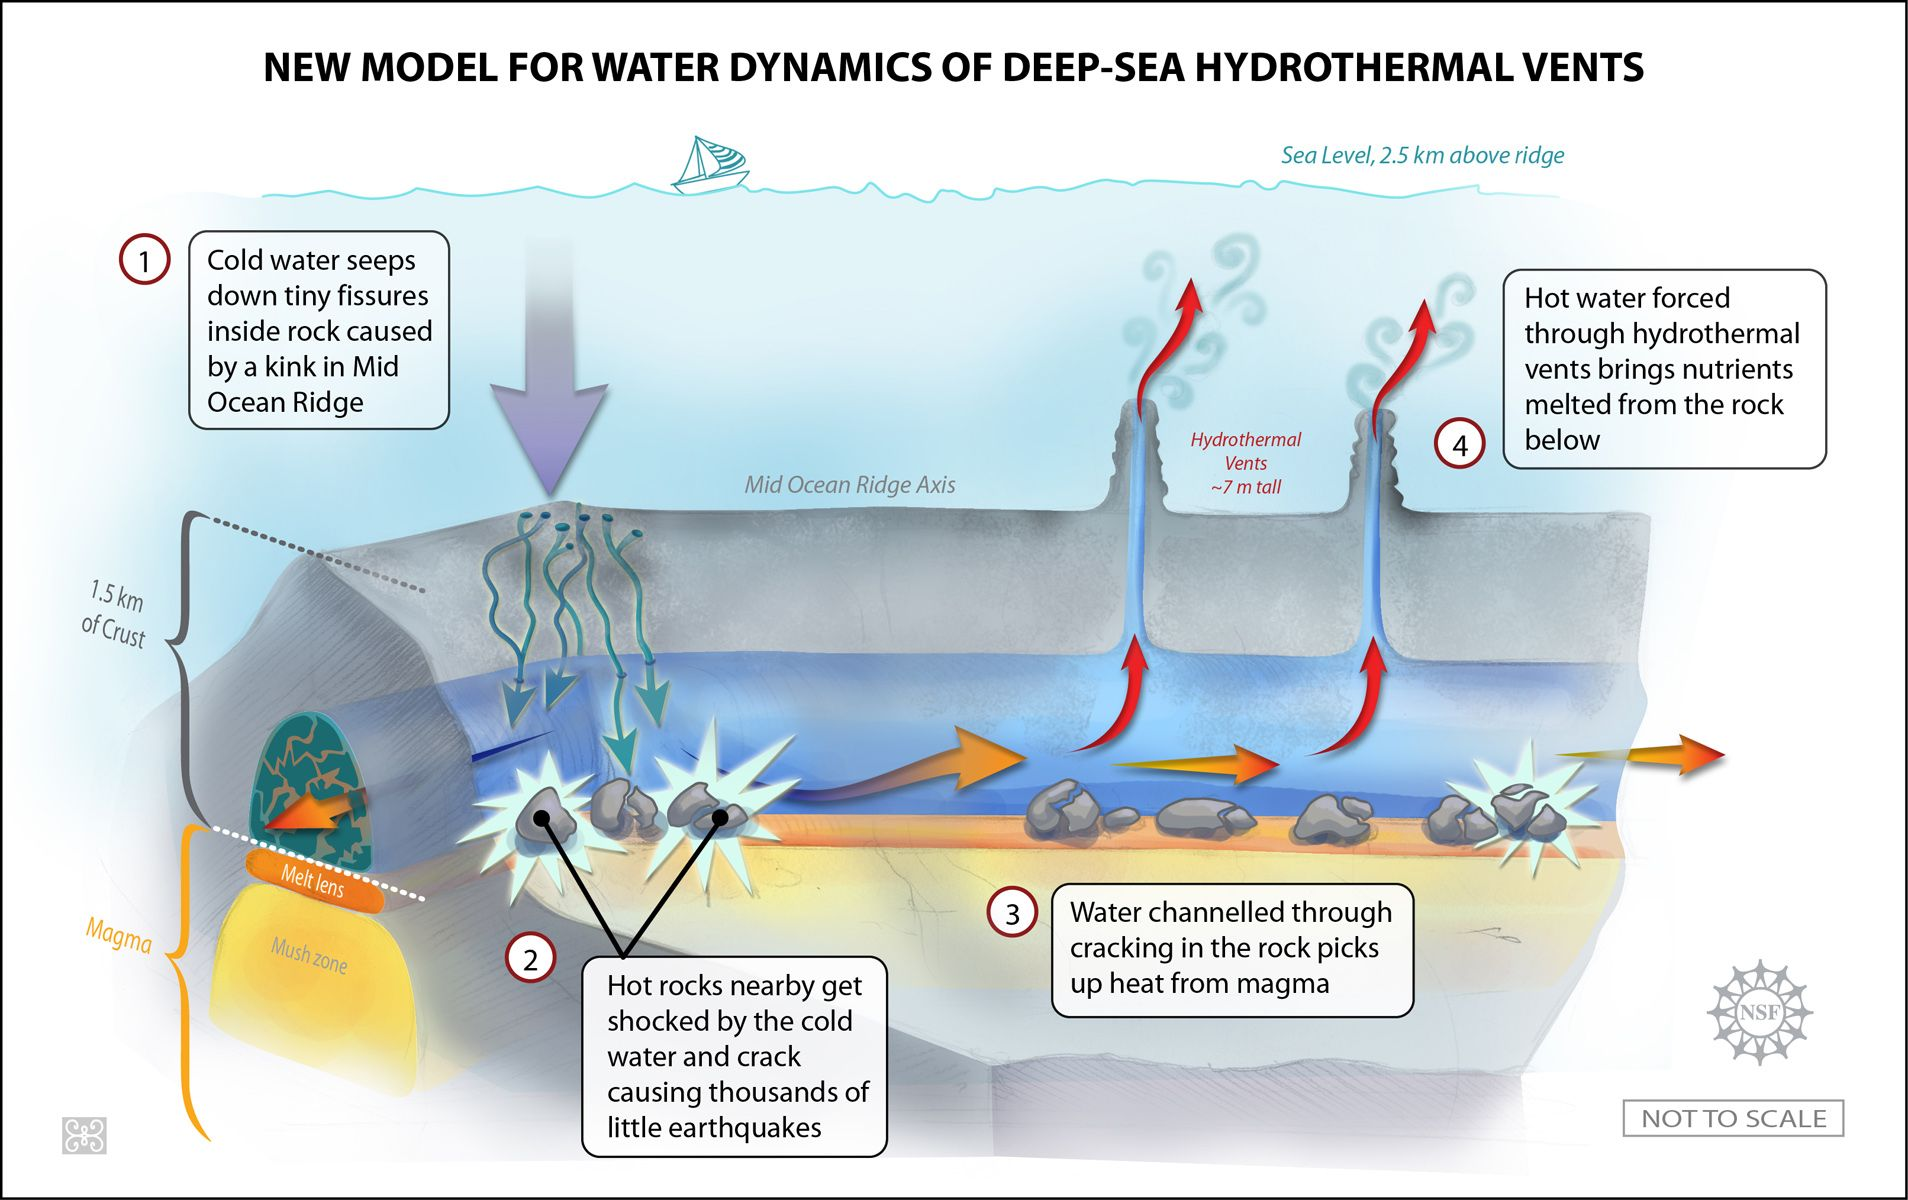 new model for water dynamics of hydrothermal vents seafloor spreading plate tectonics earth science [ 1908 x 1200 Pixel ]